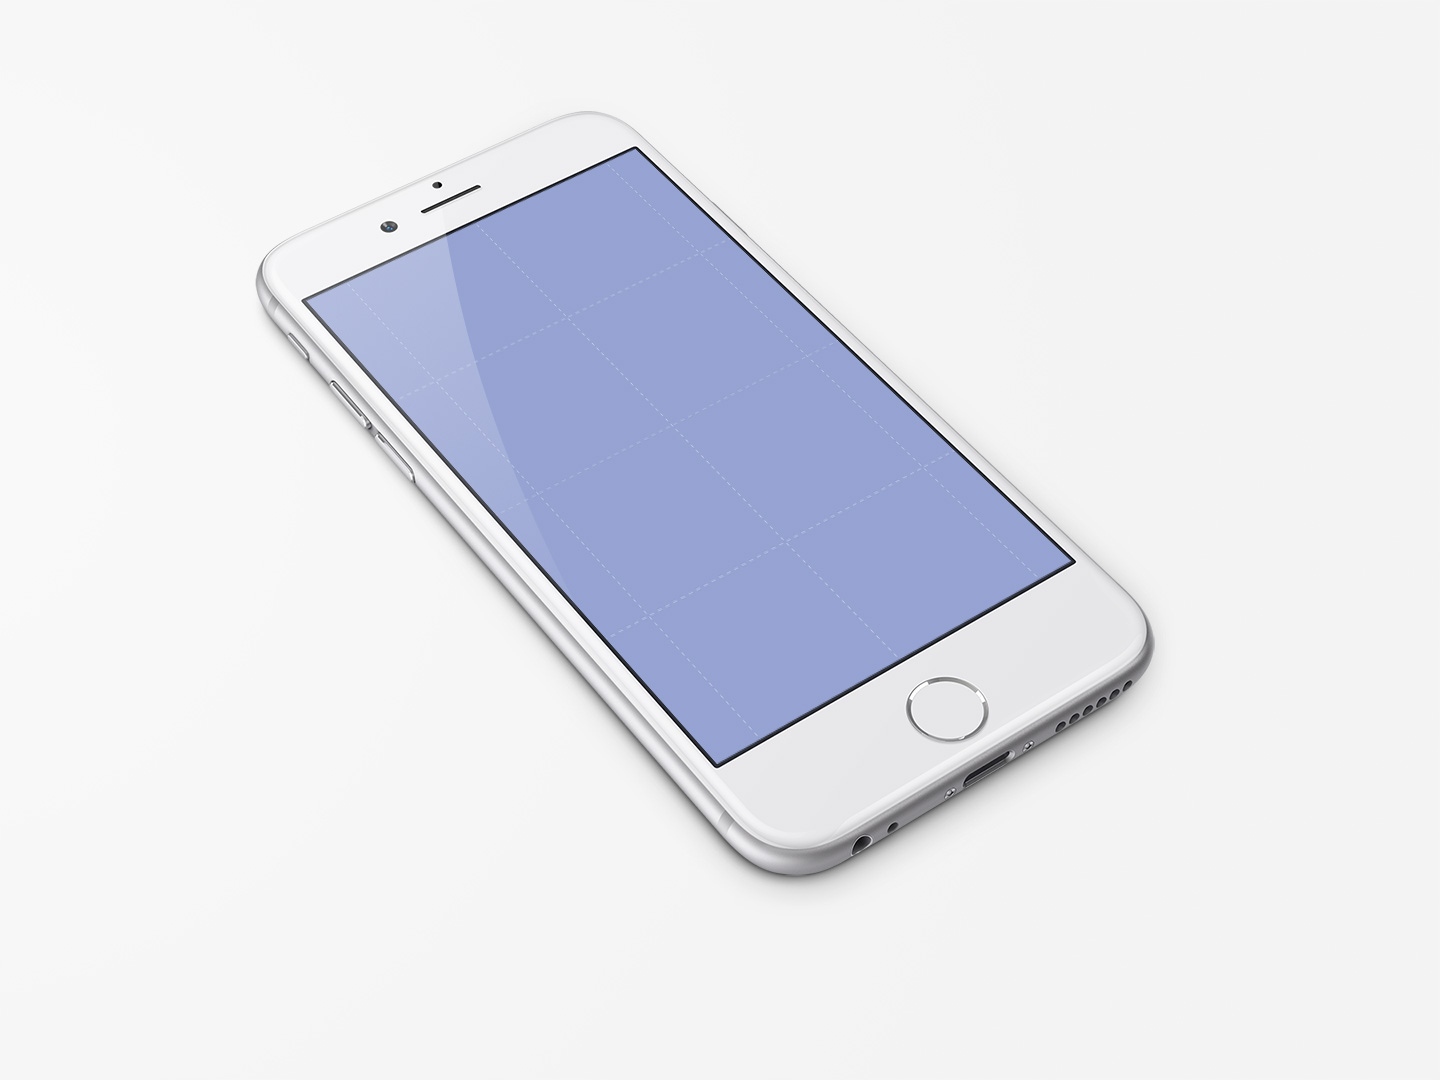 iPhone 6 PSD Mockup Template